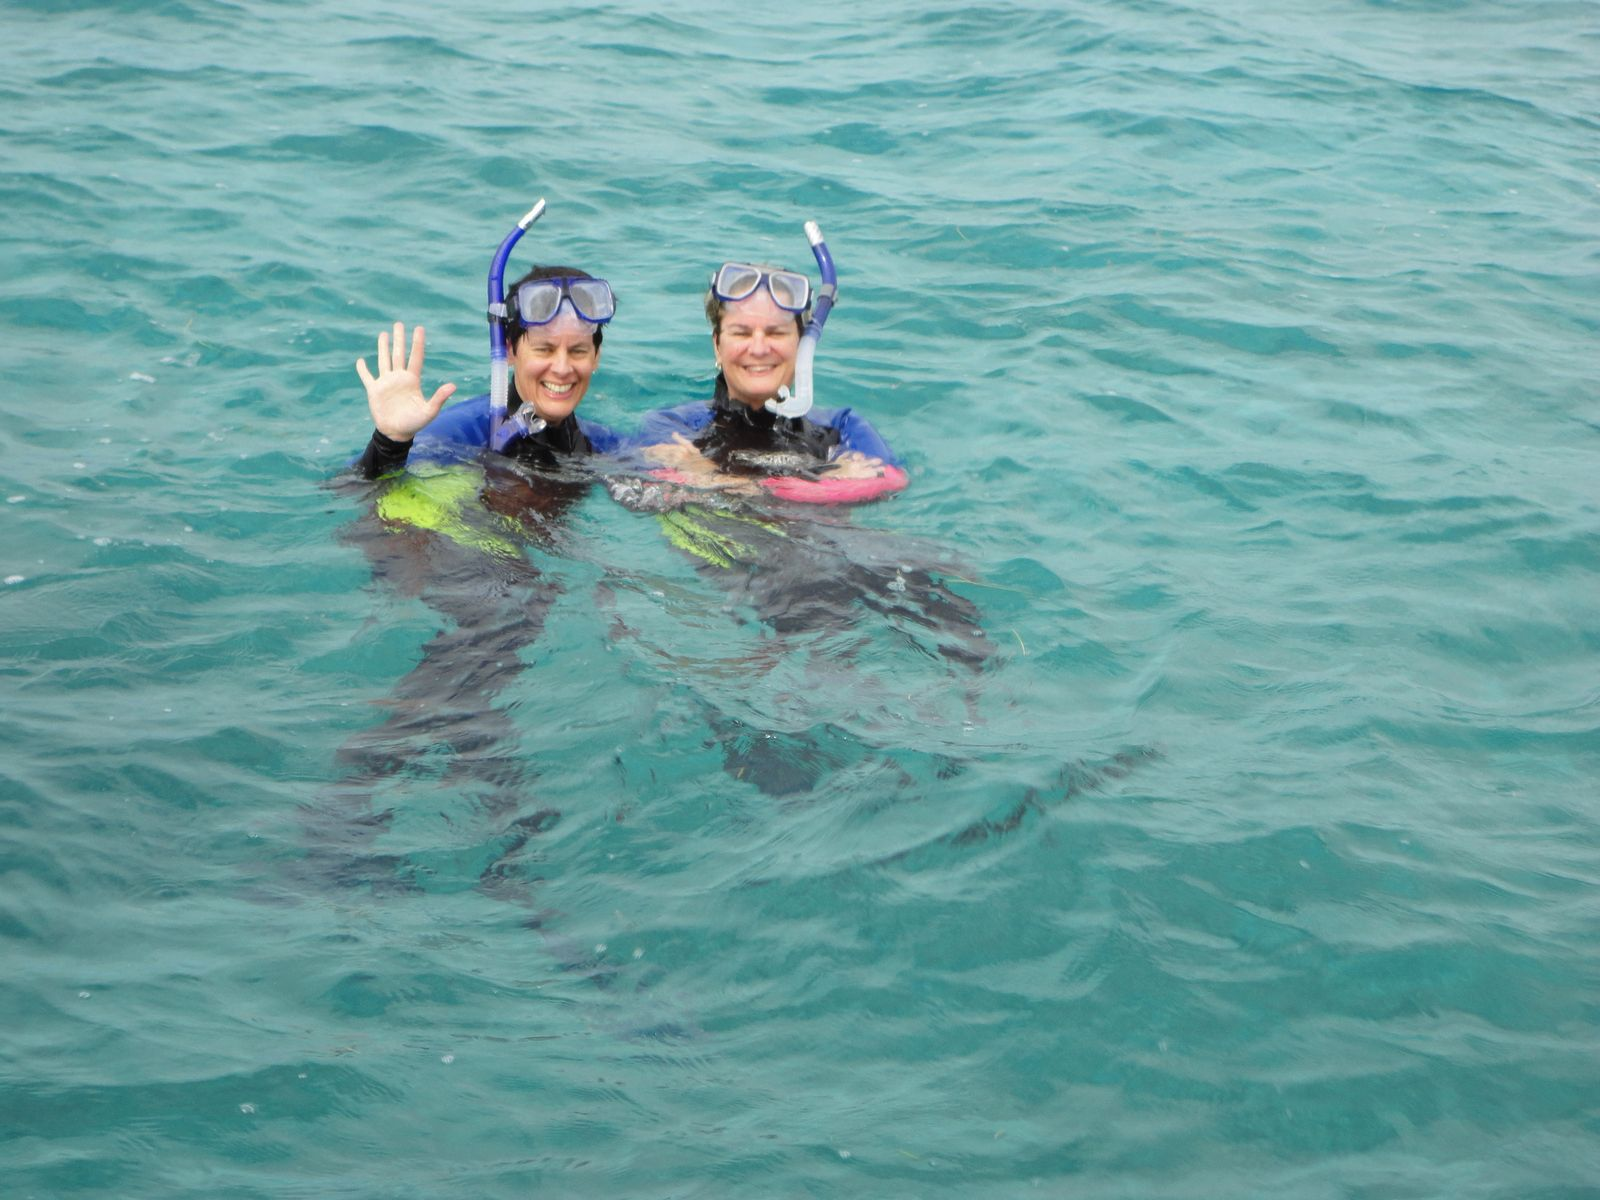 Snorkeling the reef off Ambergris Caye, Belize